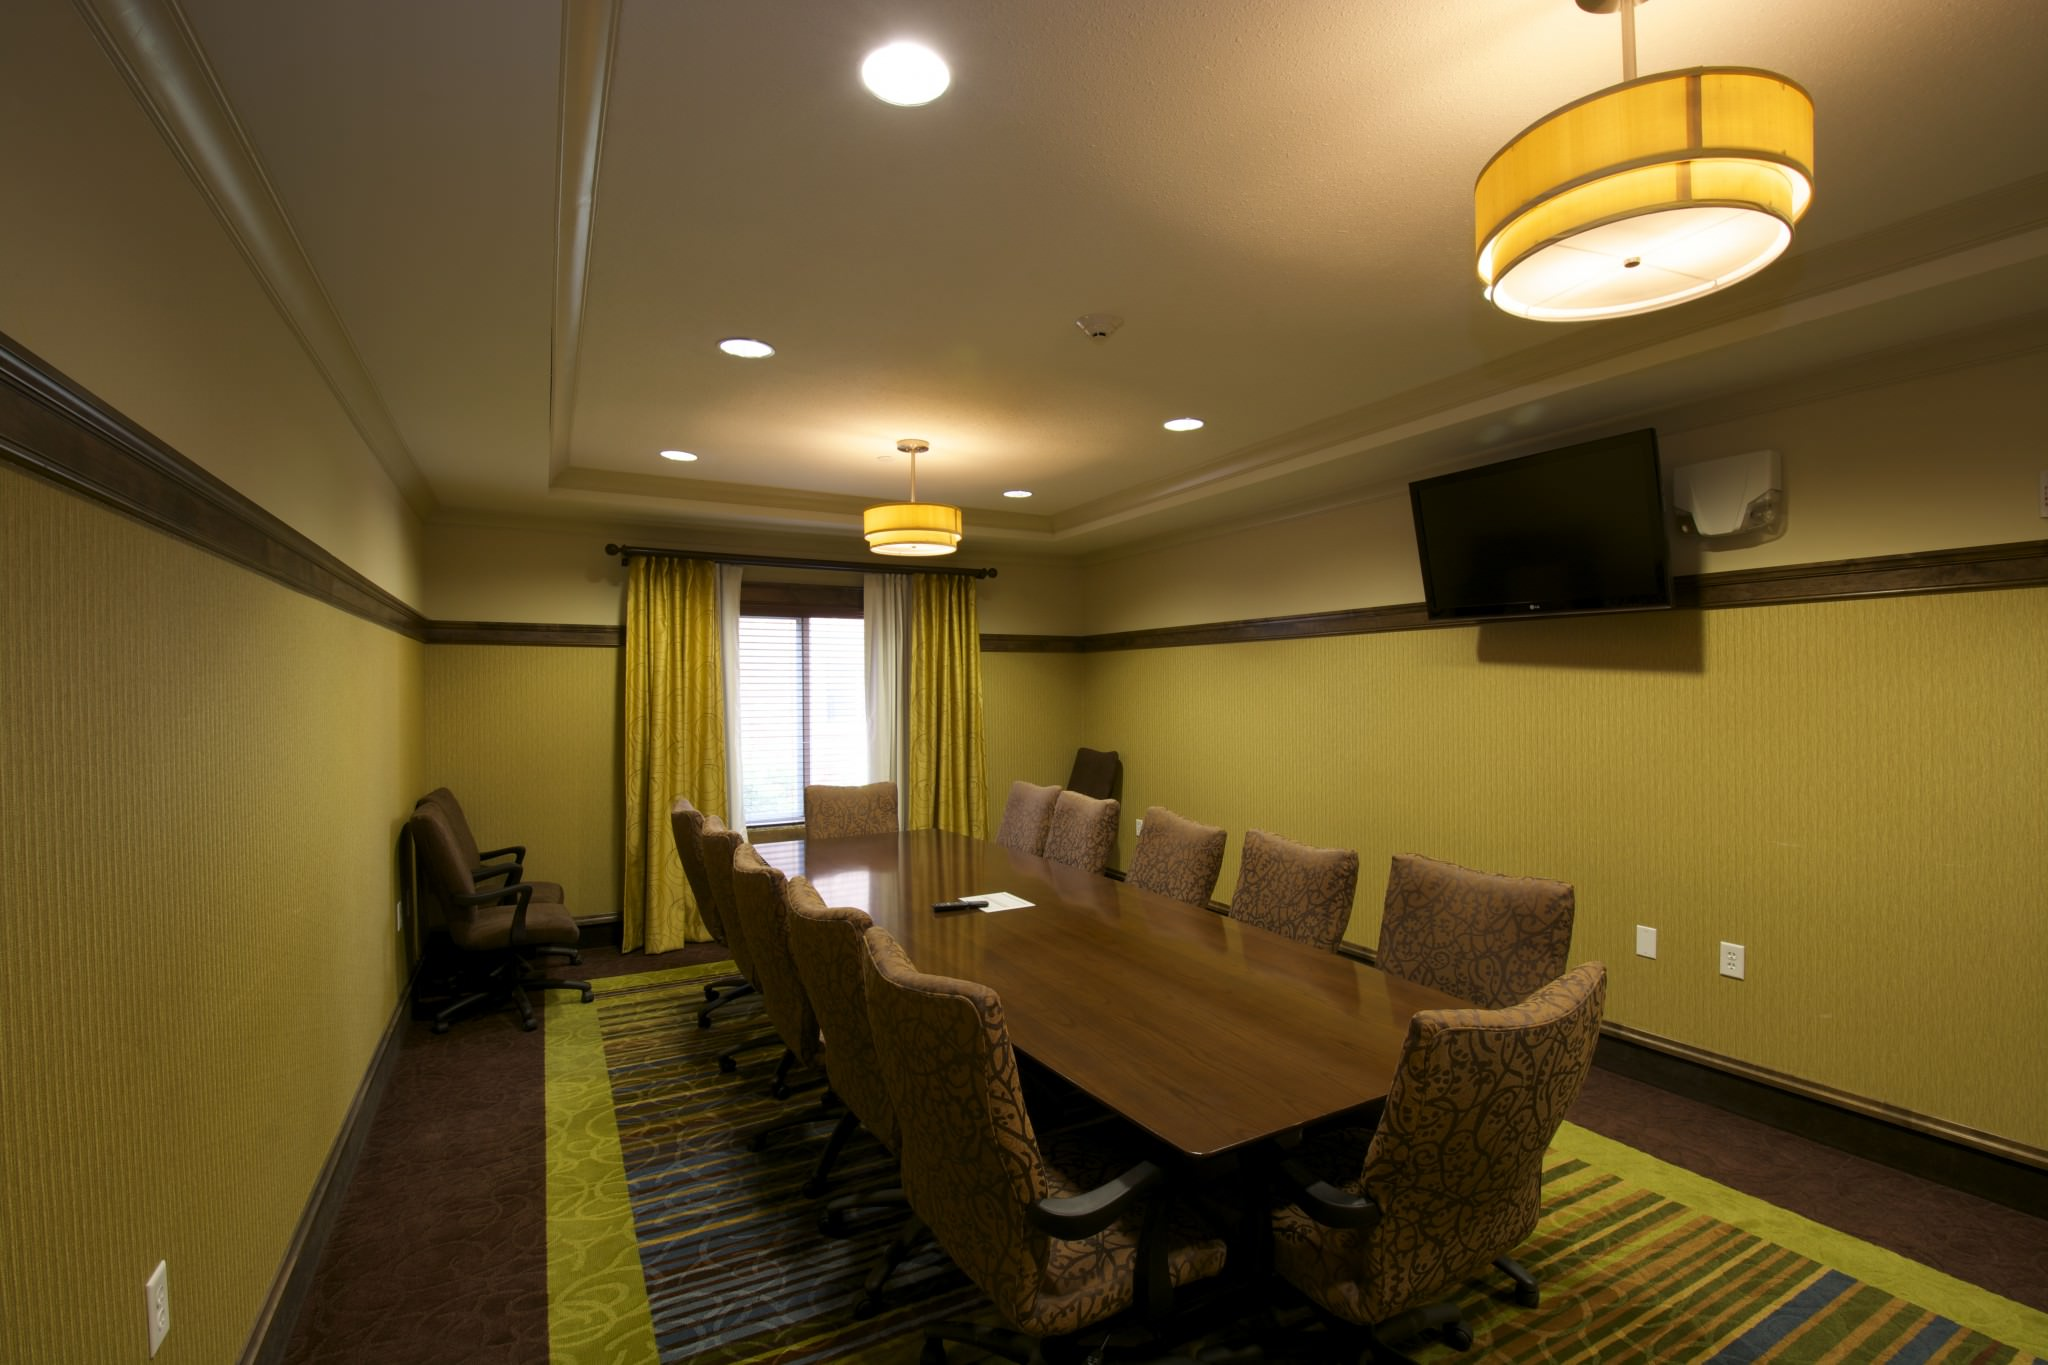 Holiday Inn conference room